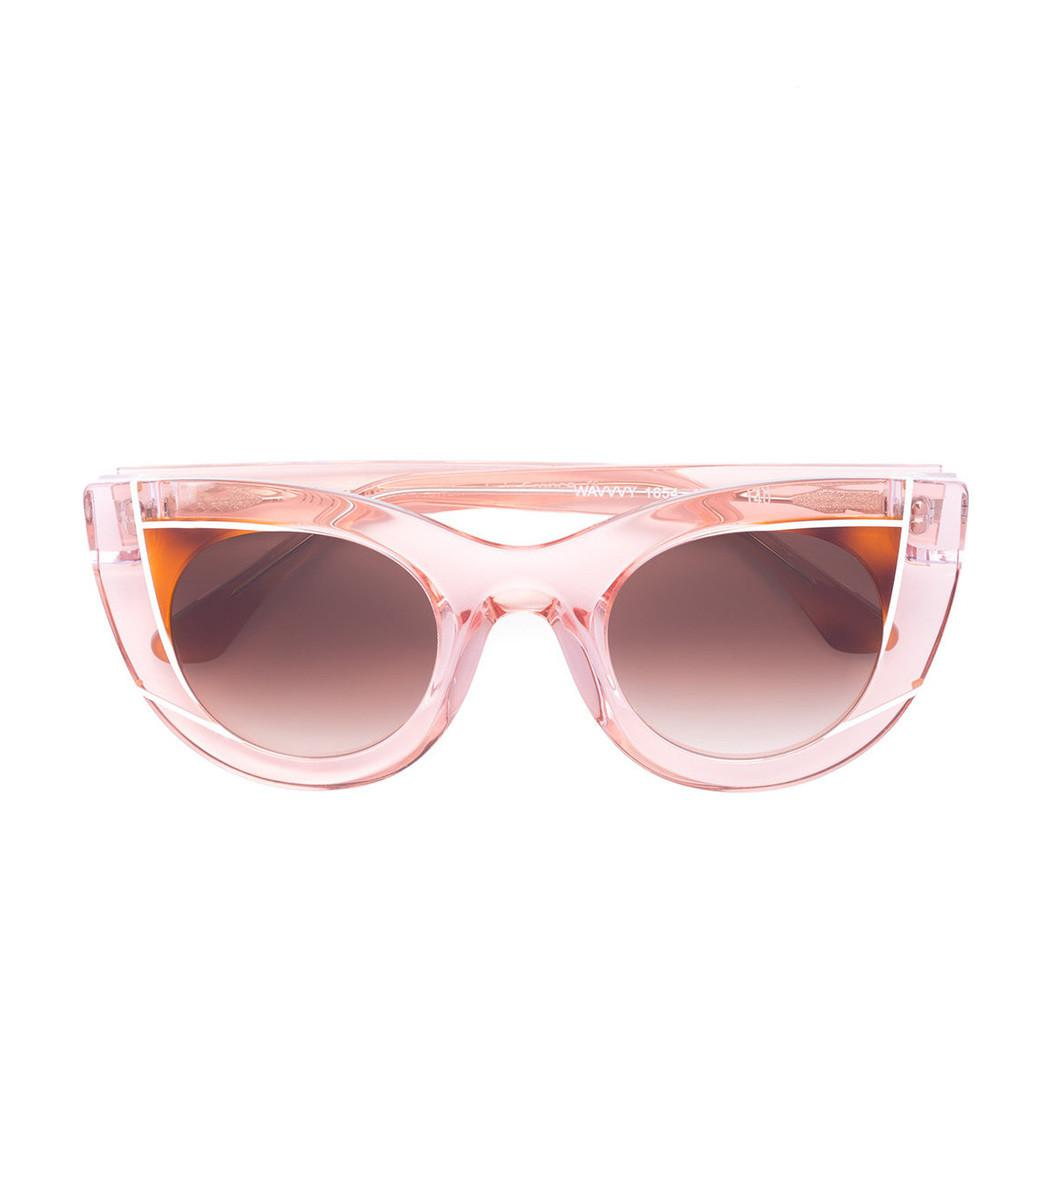 Sunglassses Lasry 1654 Wavvvy Thierry Sunglassses Wavvvy pPndYwqd